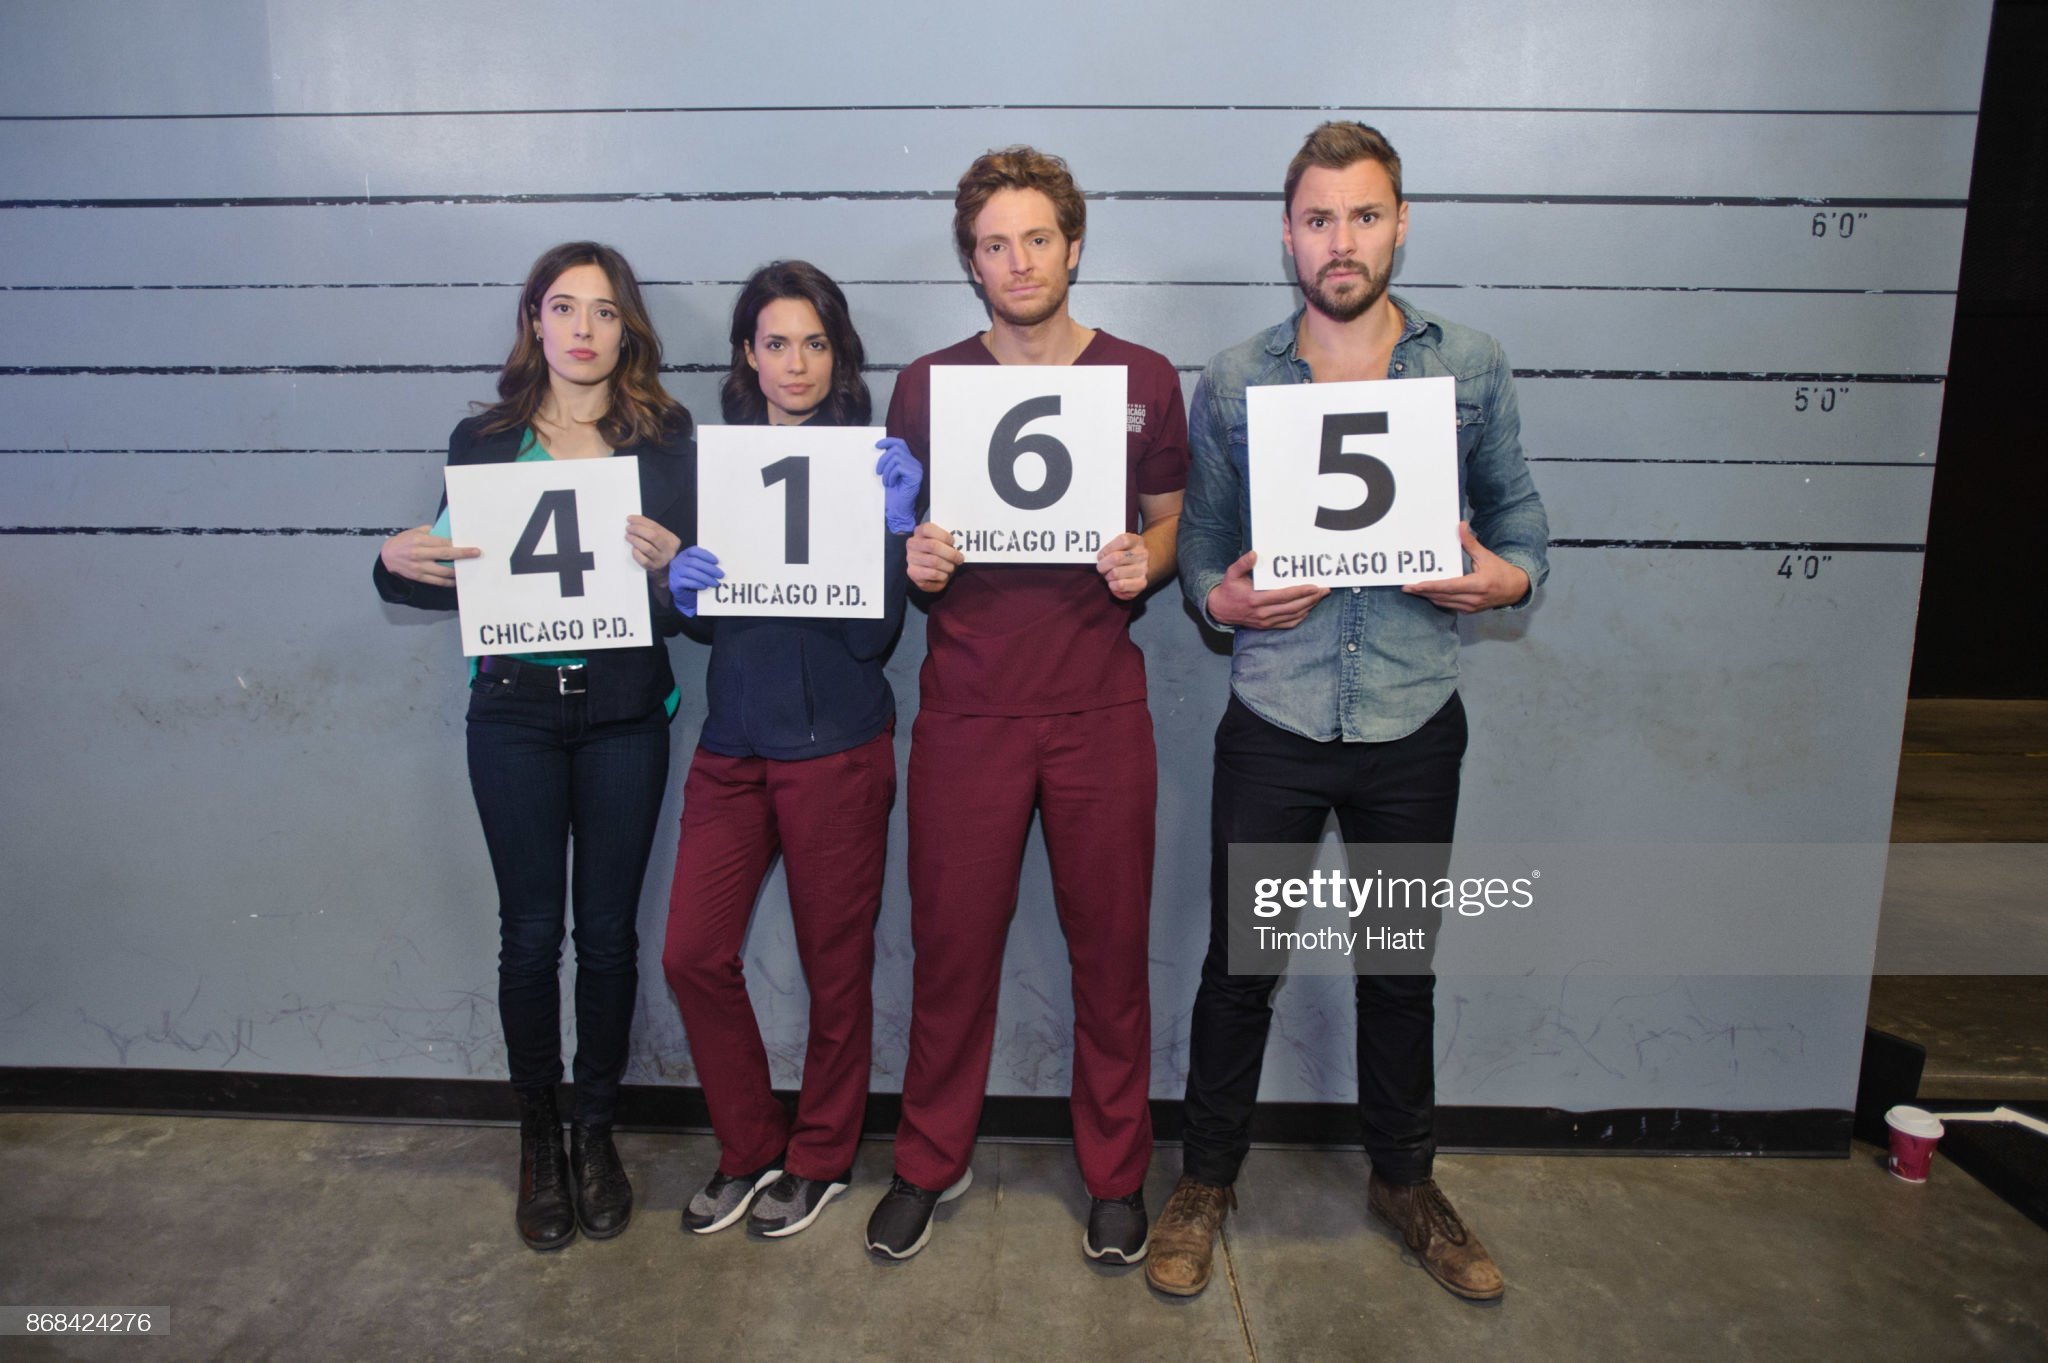 ¿Cuánto mide Torrey DeVitto? - Real height Marina-squerciati-torrey-devitto-nick-gehlfuss-and-patrick-john-take-picture-id868424276?s=2048x2048